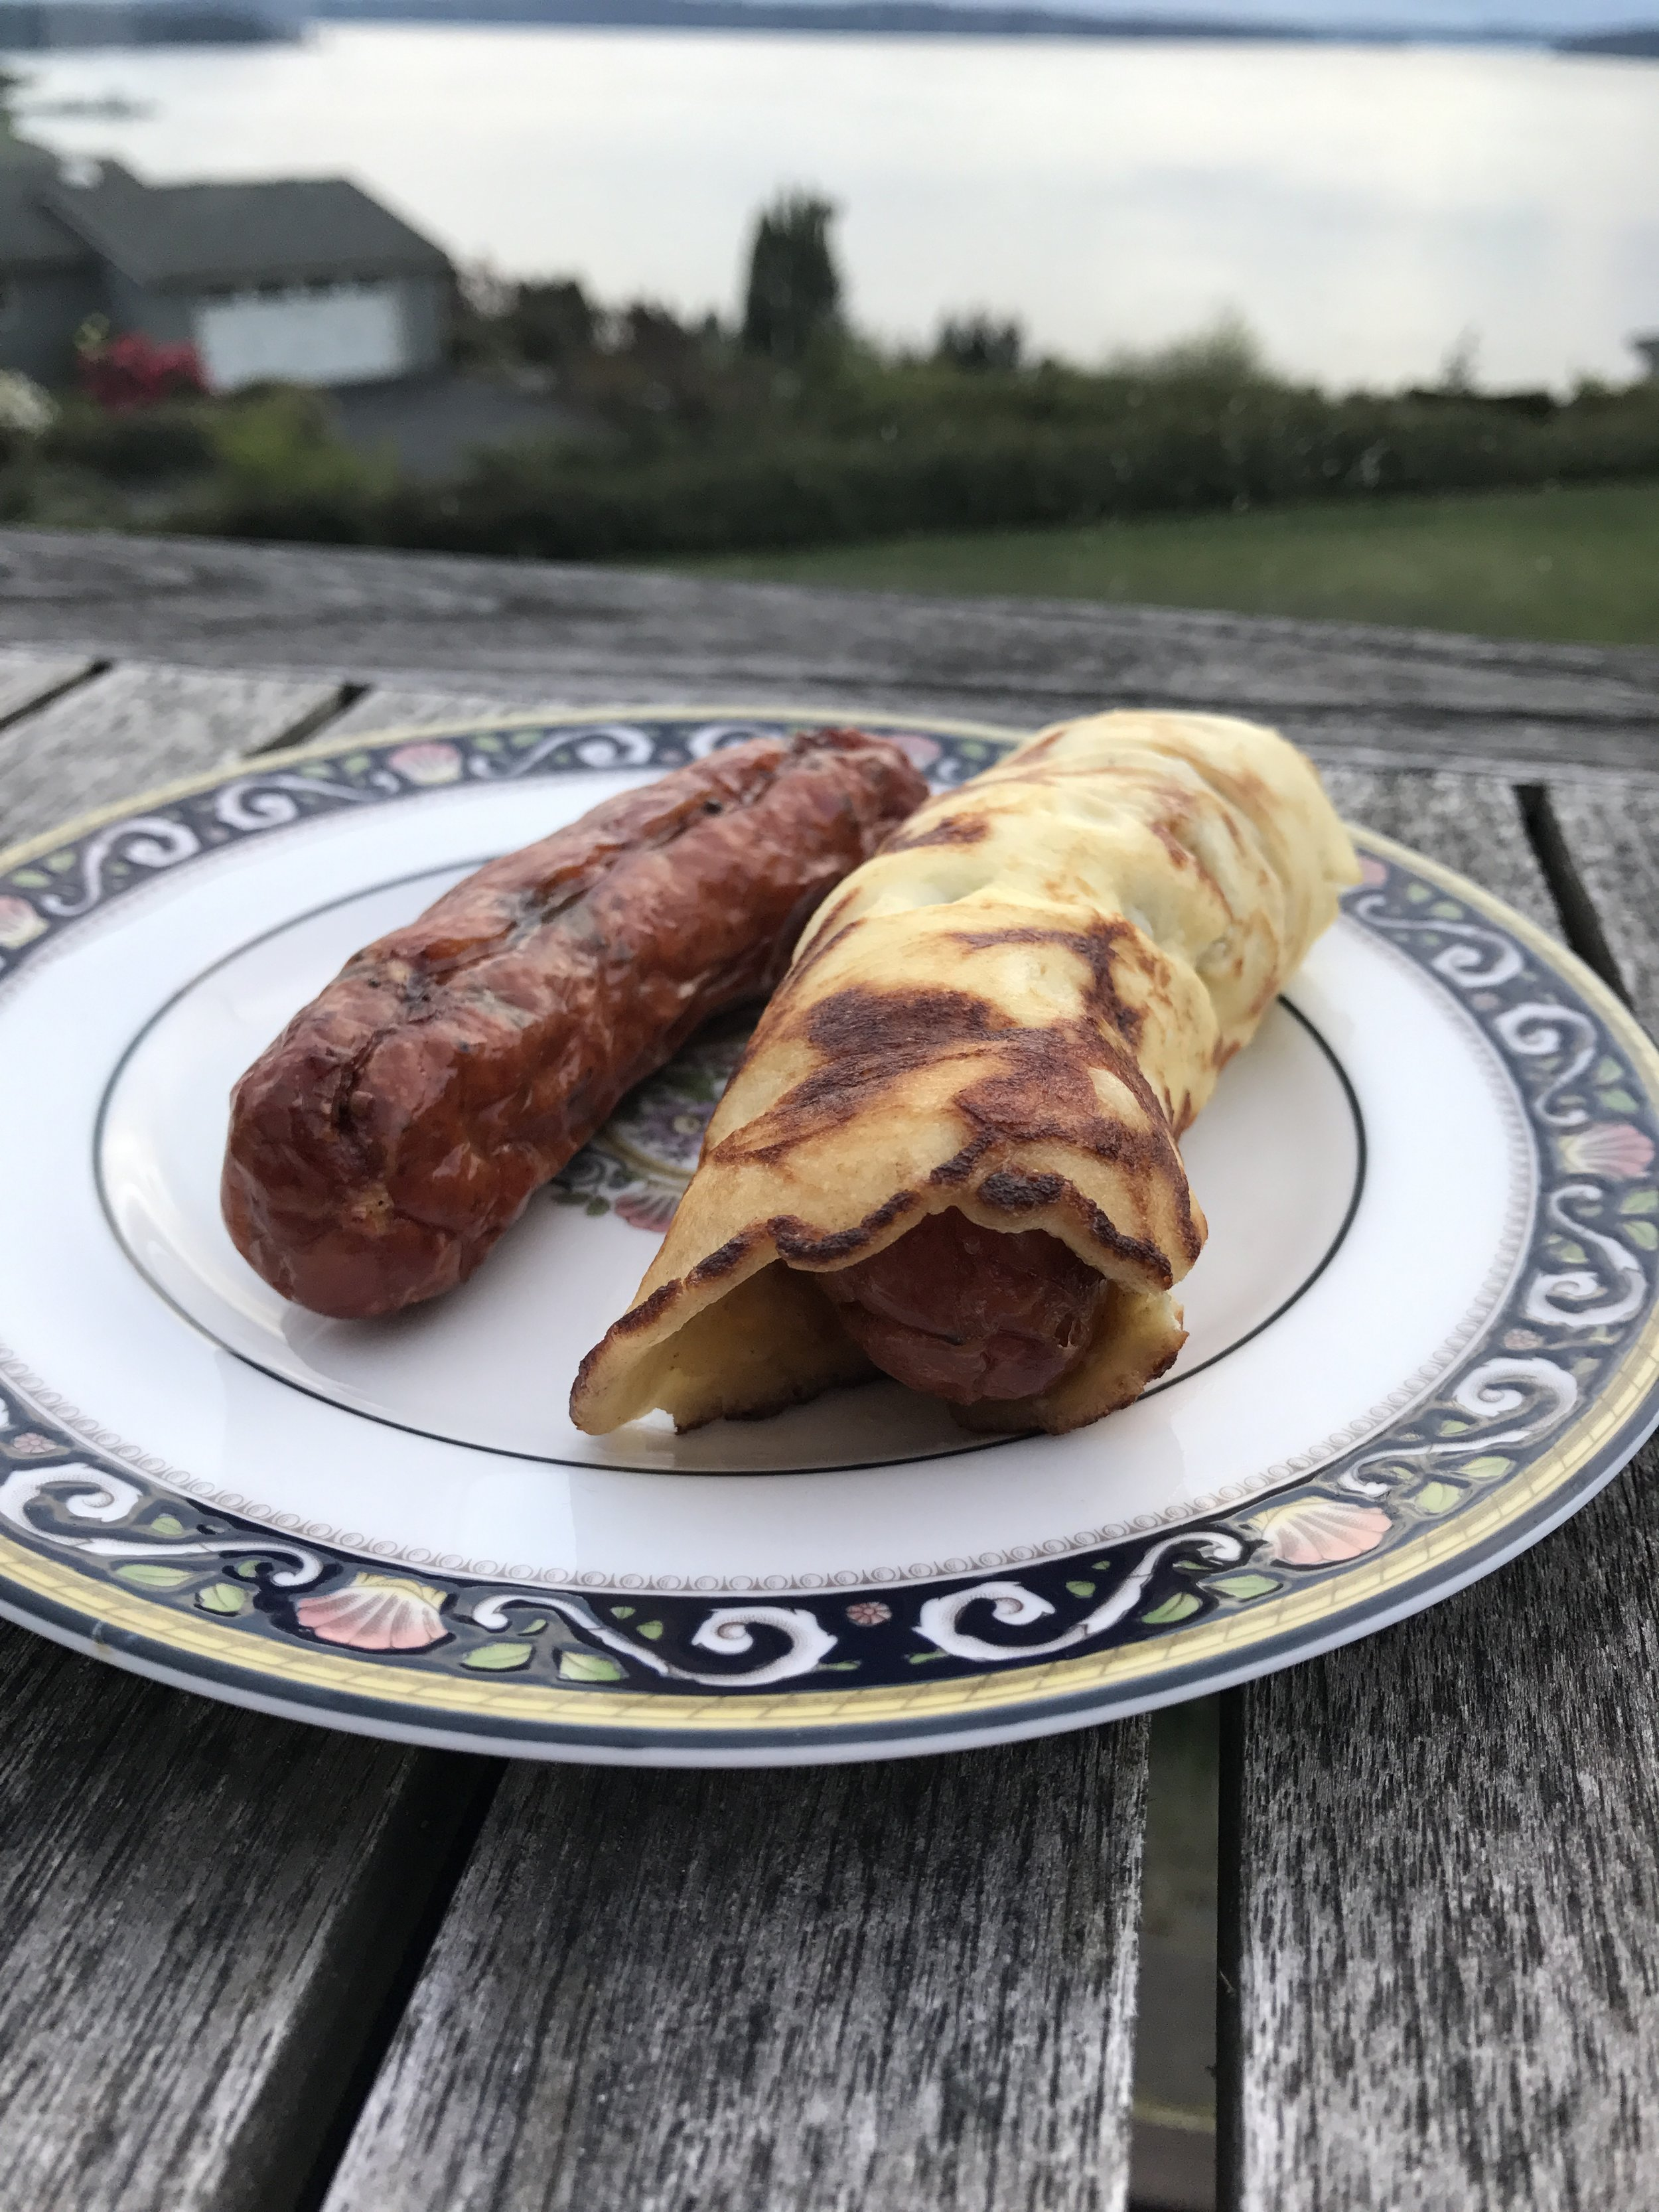 - These crepes are great alone, or can be used as a wrap for a hot dog or sausage.